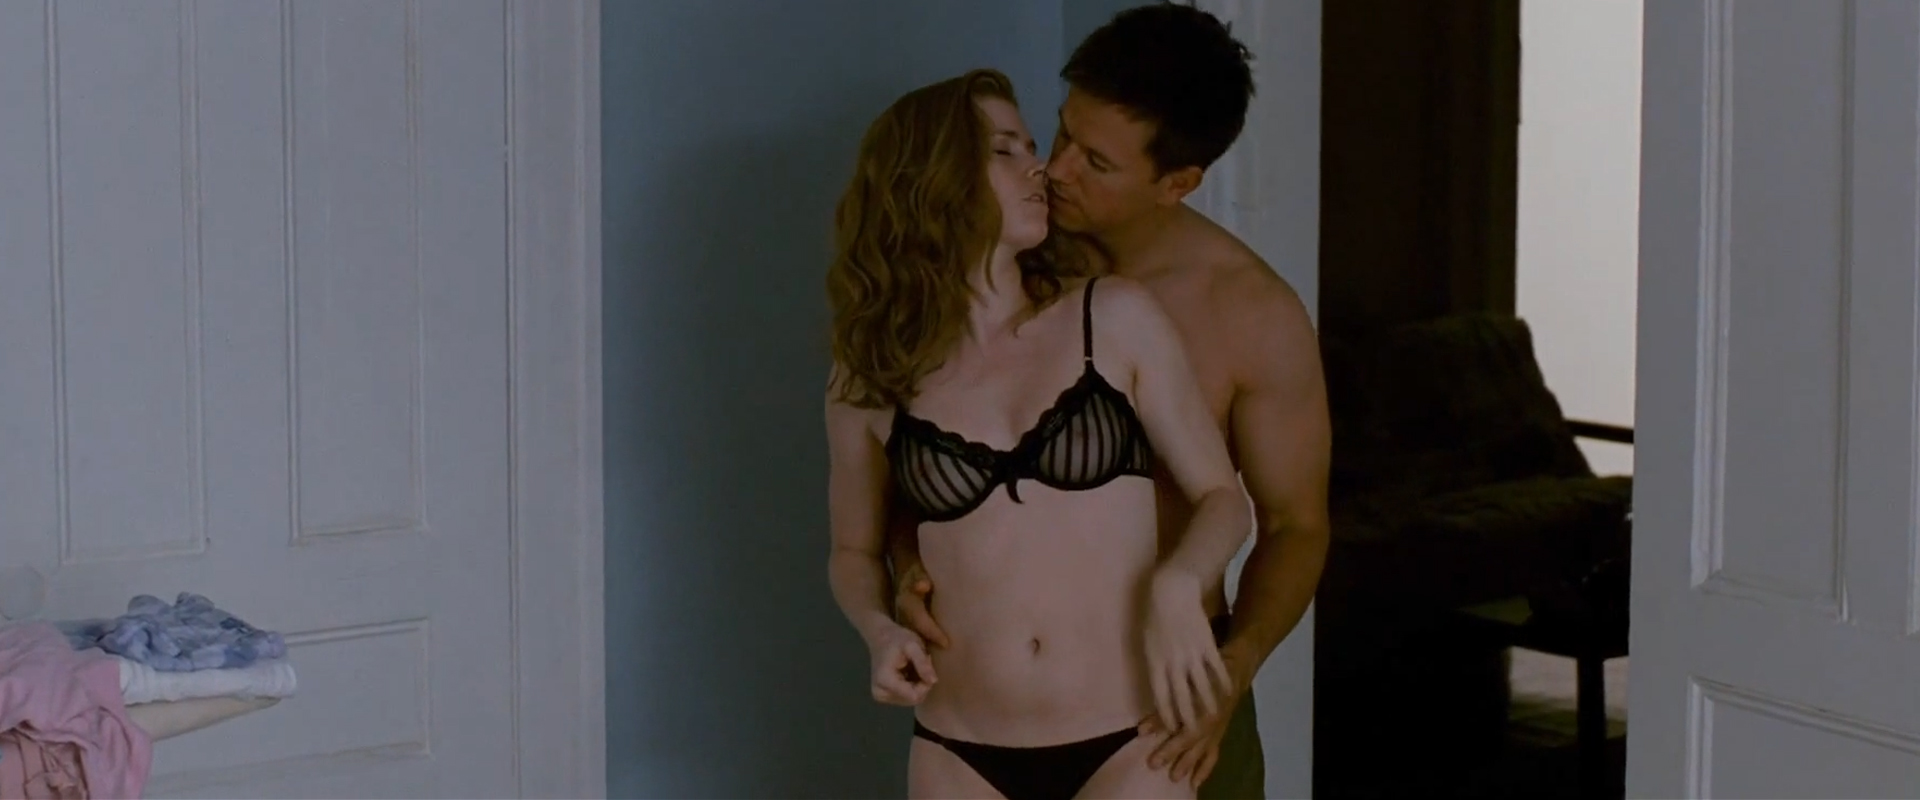 Amy Adams Hot Naked amy adams - the fighter (2010) - celebs roulette tube